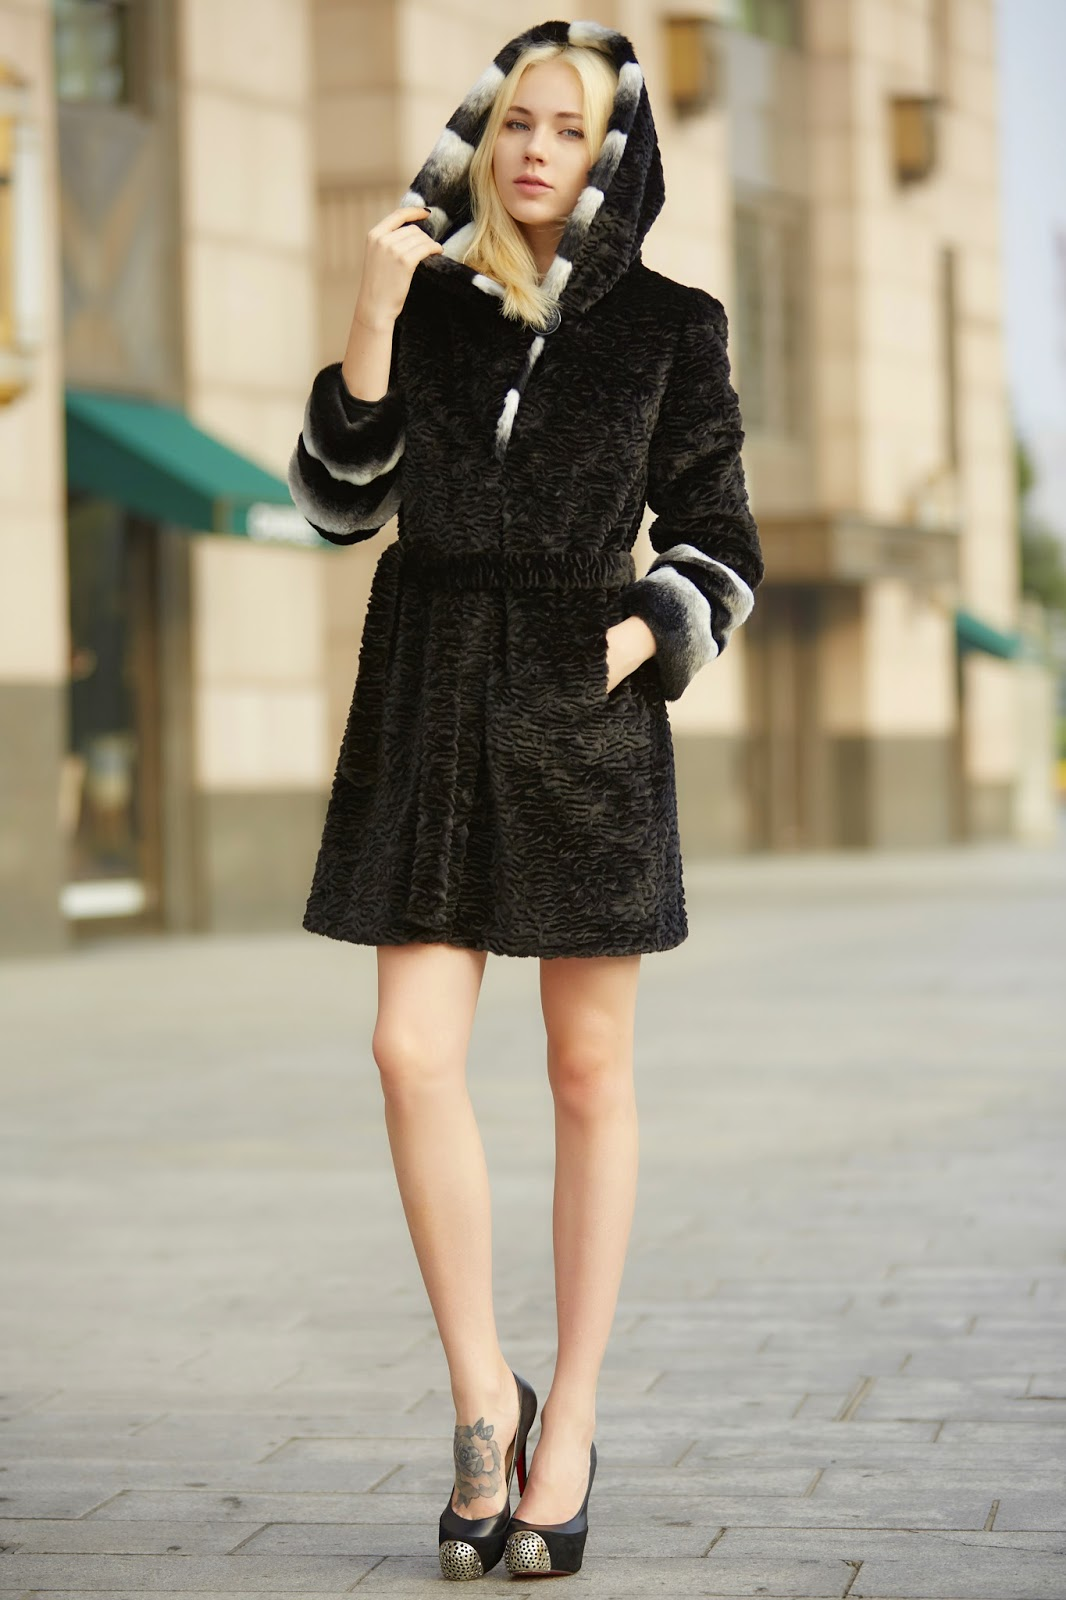 http://www.messcabuy.com/c/women-vest-fur-coats/?ref=bg92